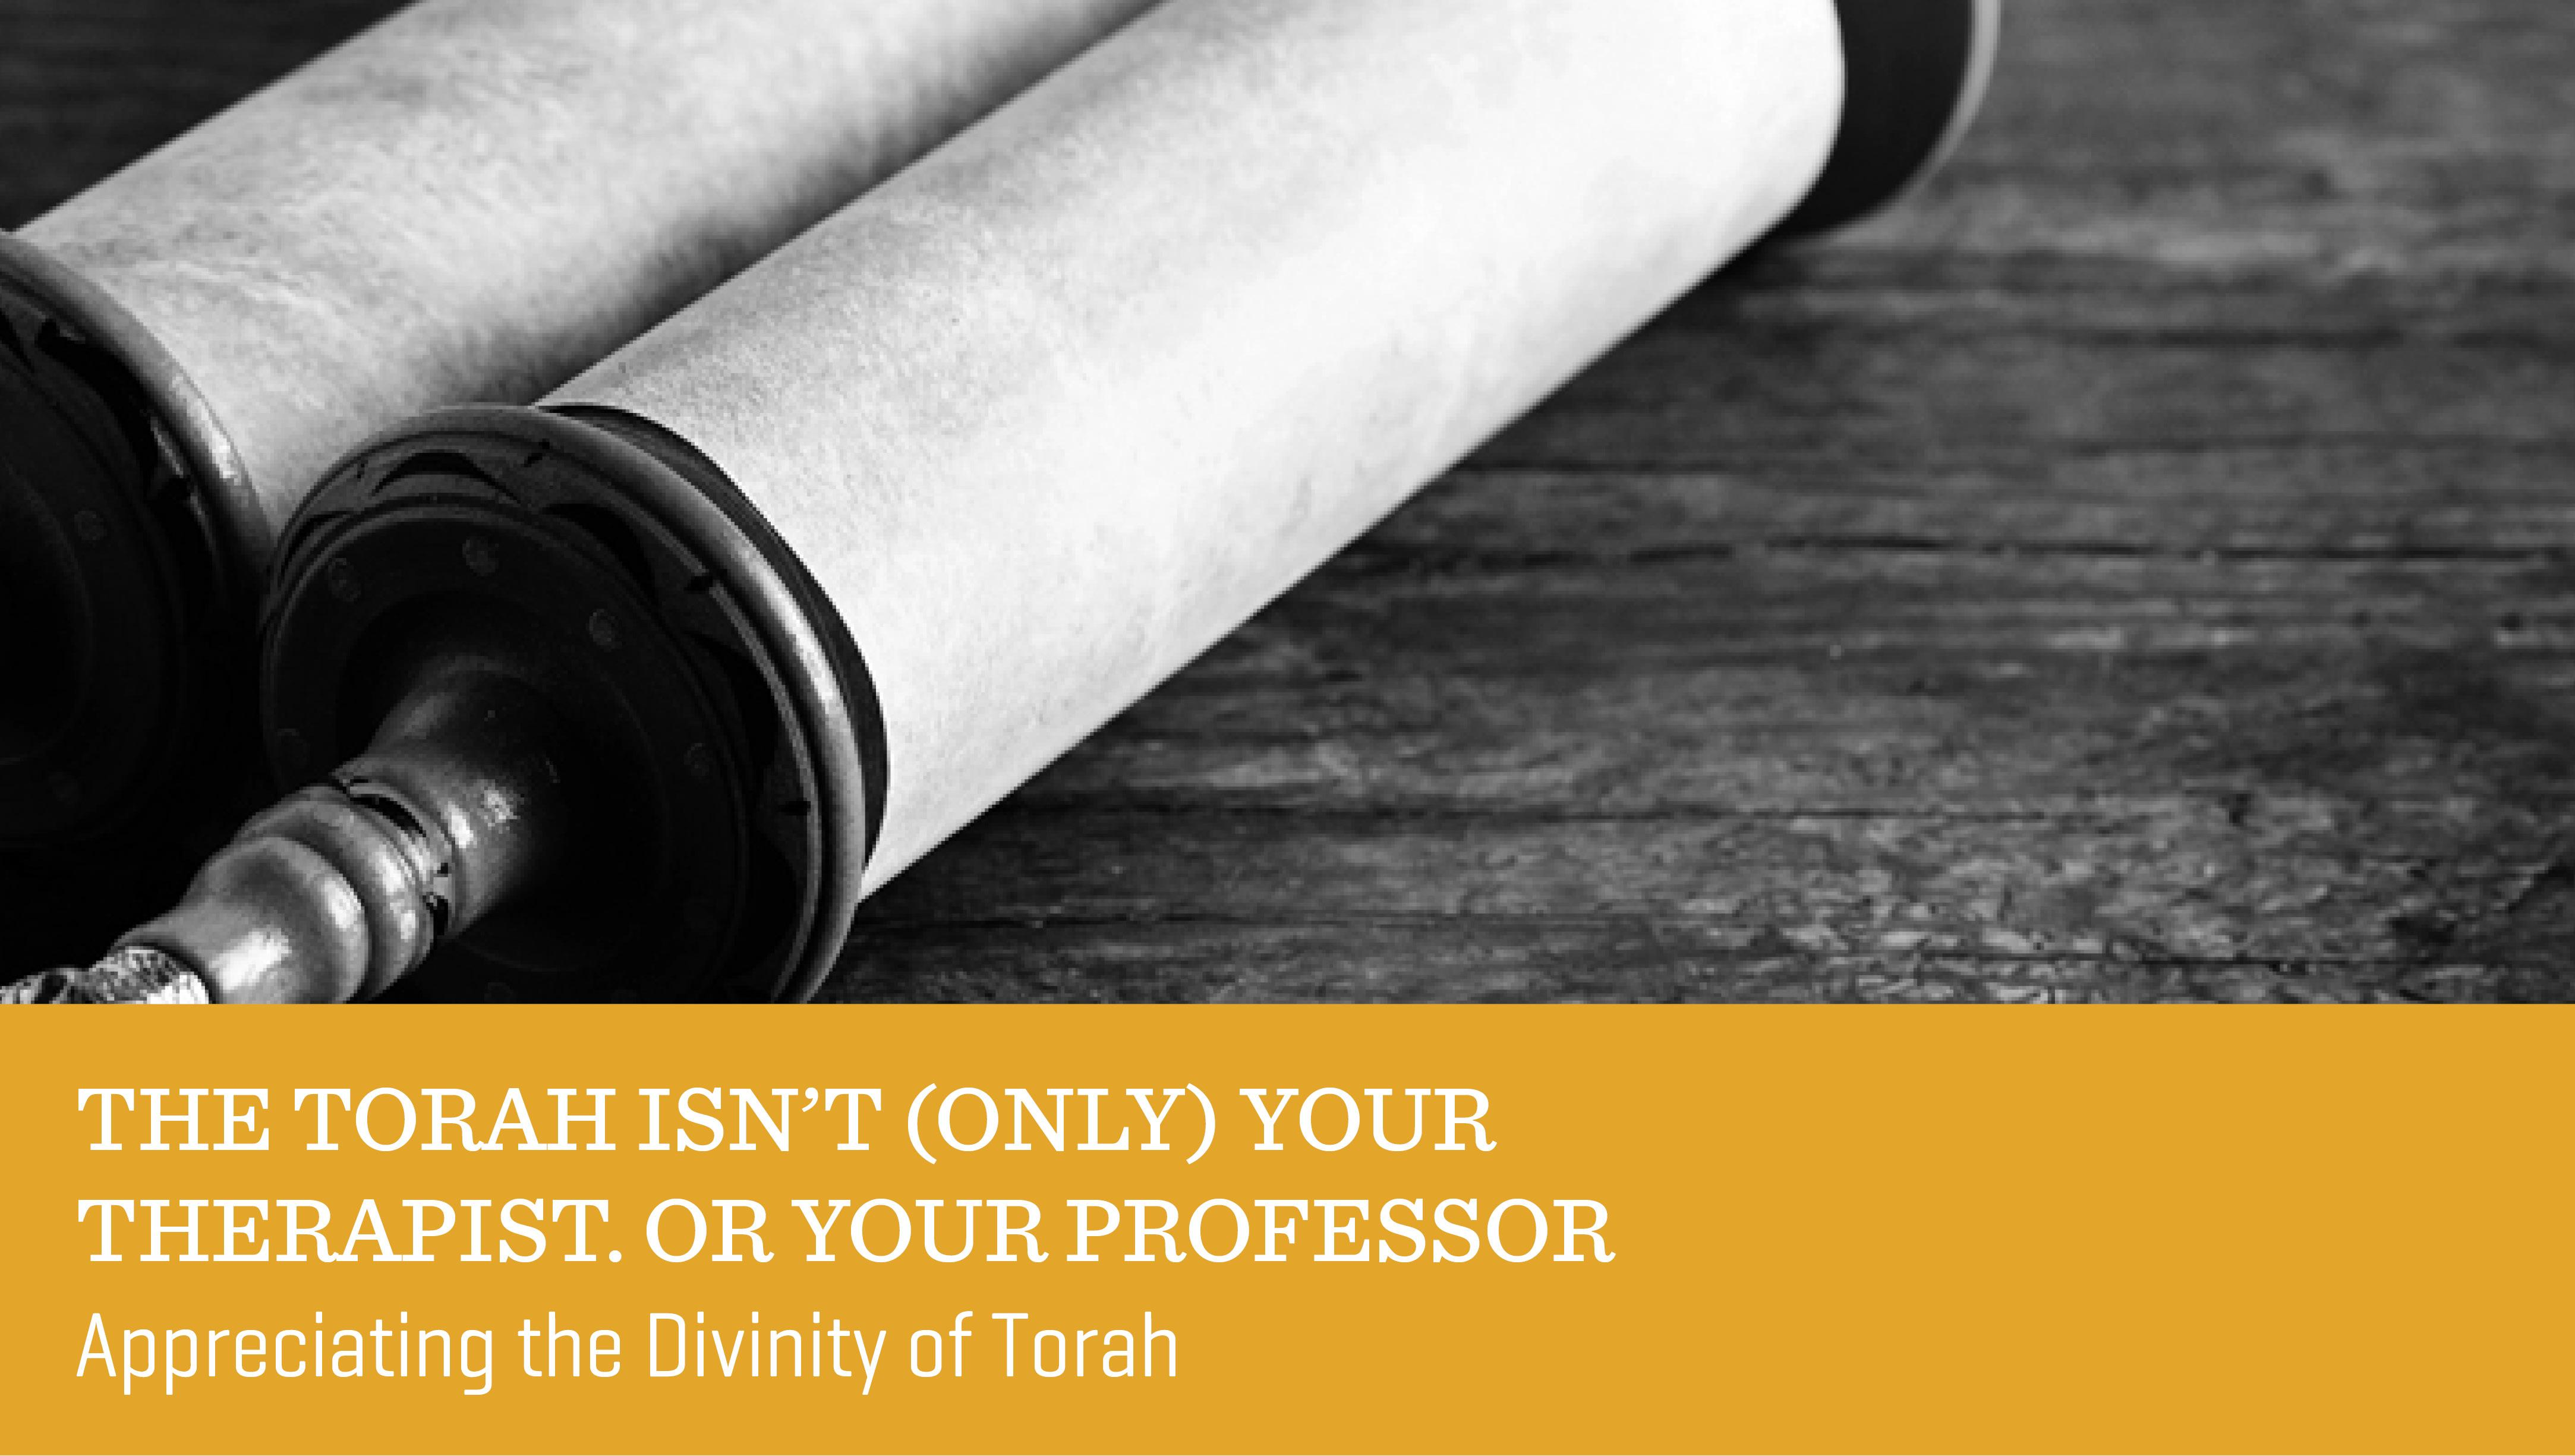 The Torah Isn't (Only) Your Therapist. Or Your Professor